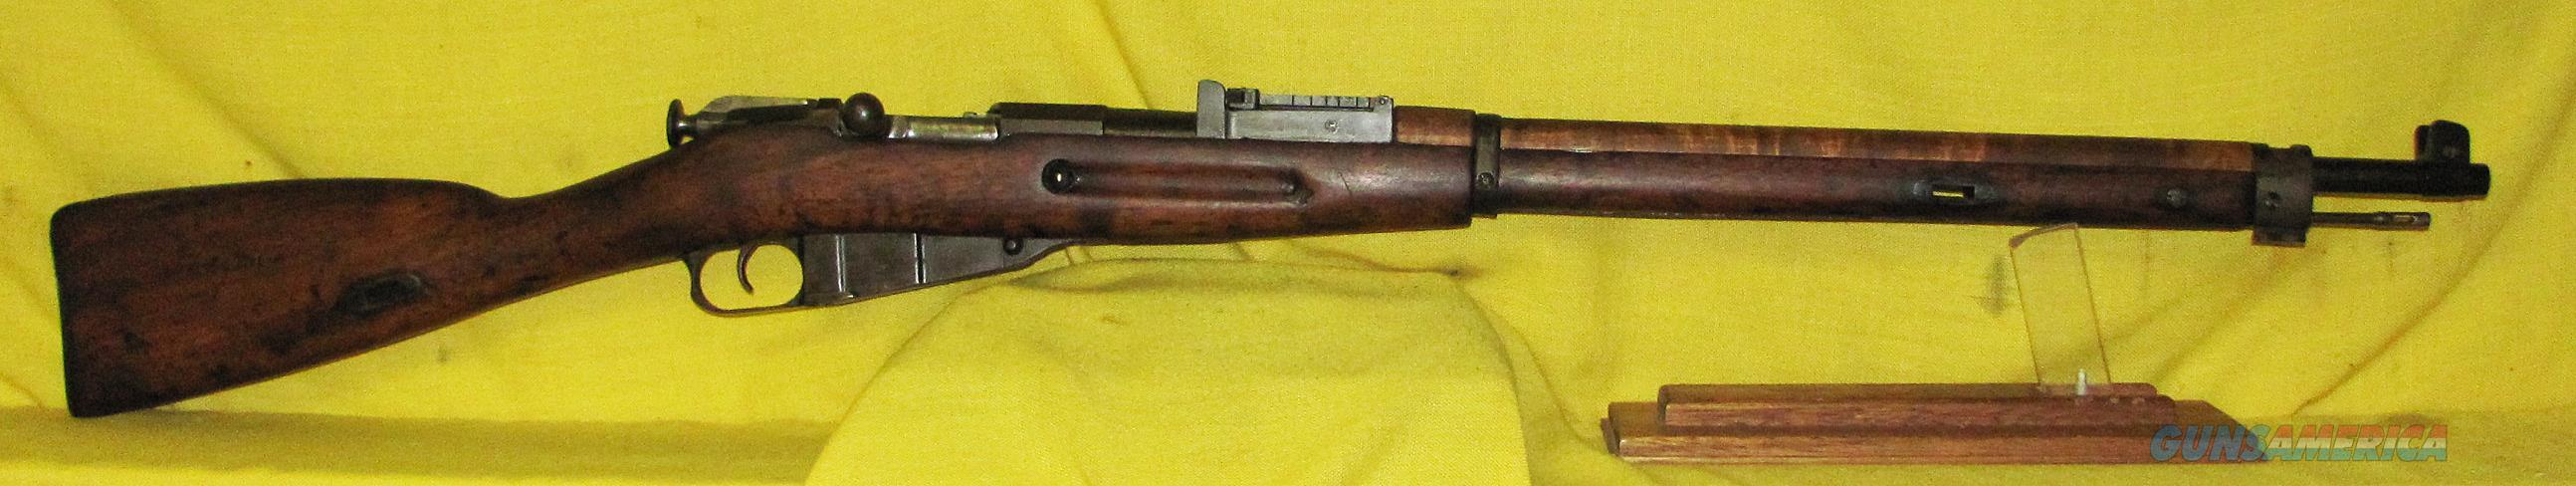 MOSIN-NAGANT M39  Guns > Rifles > Mosin-Nagant Rifles/Carbines